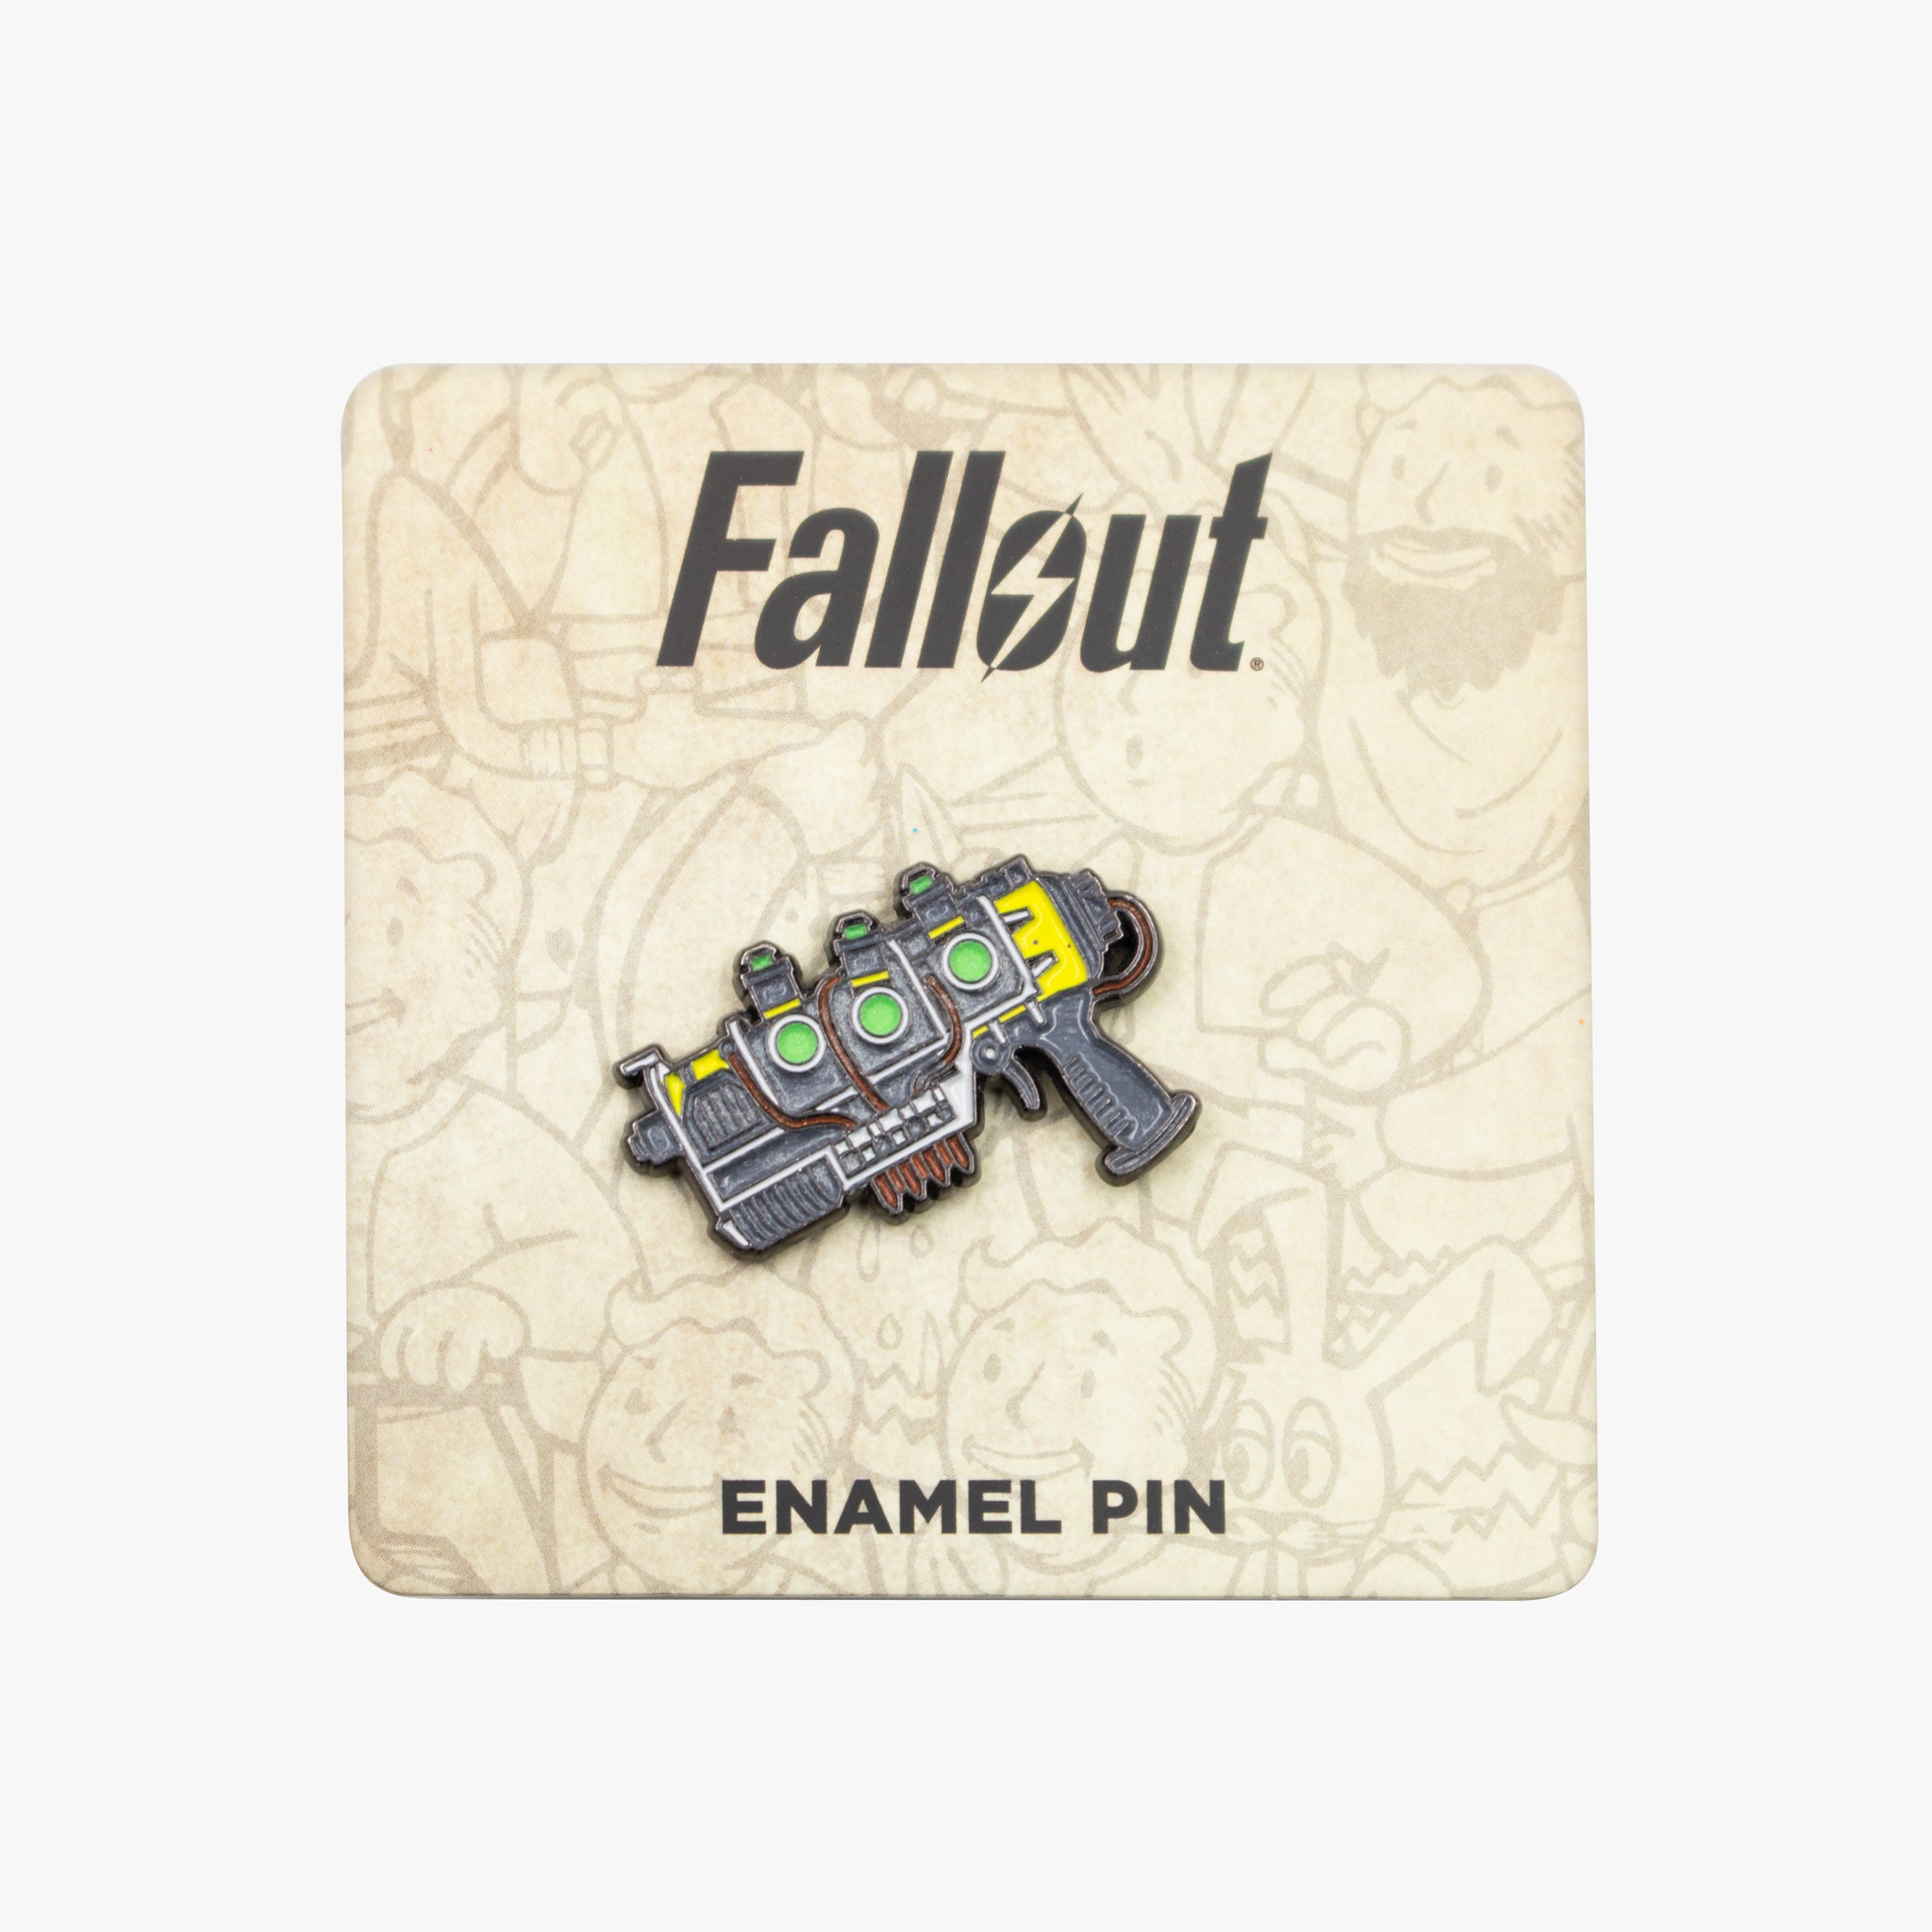 fallout collectors box exclusive gaming video games vault boy plasma pistol glow in the dark enamel pin bethesda collectible culturefly